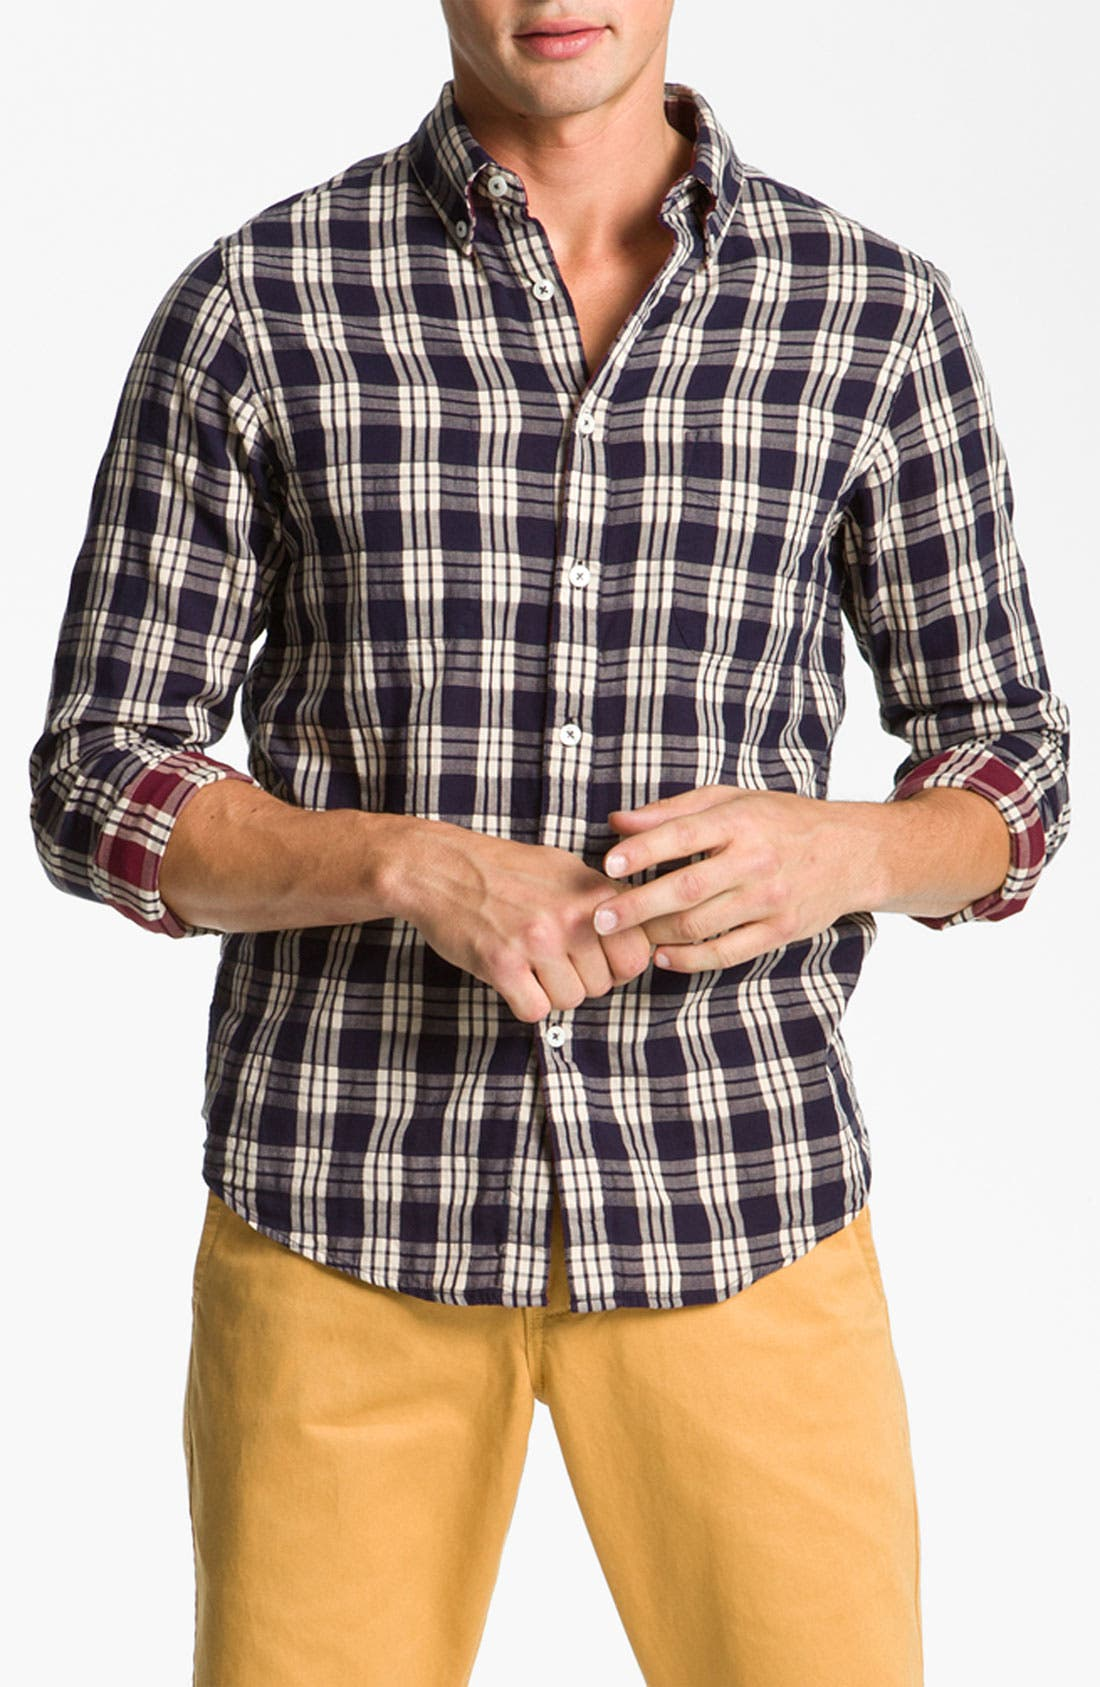 Main Image - Ben Sherman 'Clerkenwell' Reversible Plaid Woven Shirt